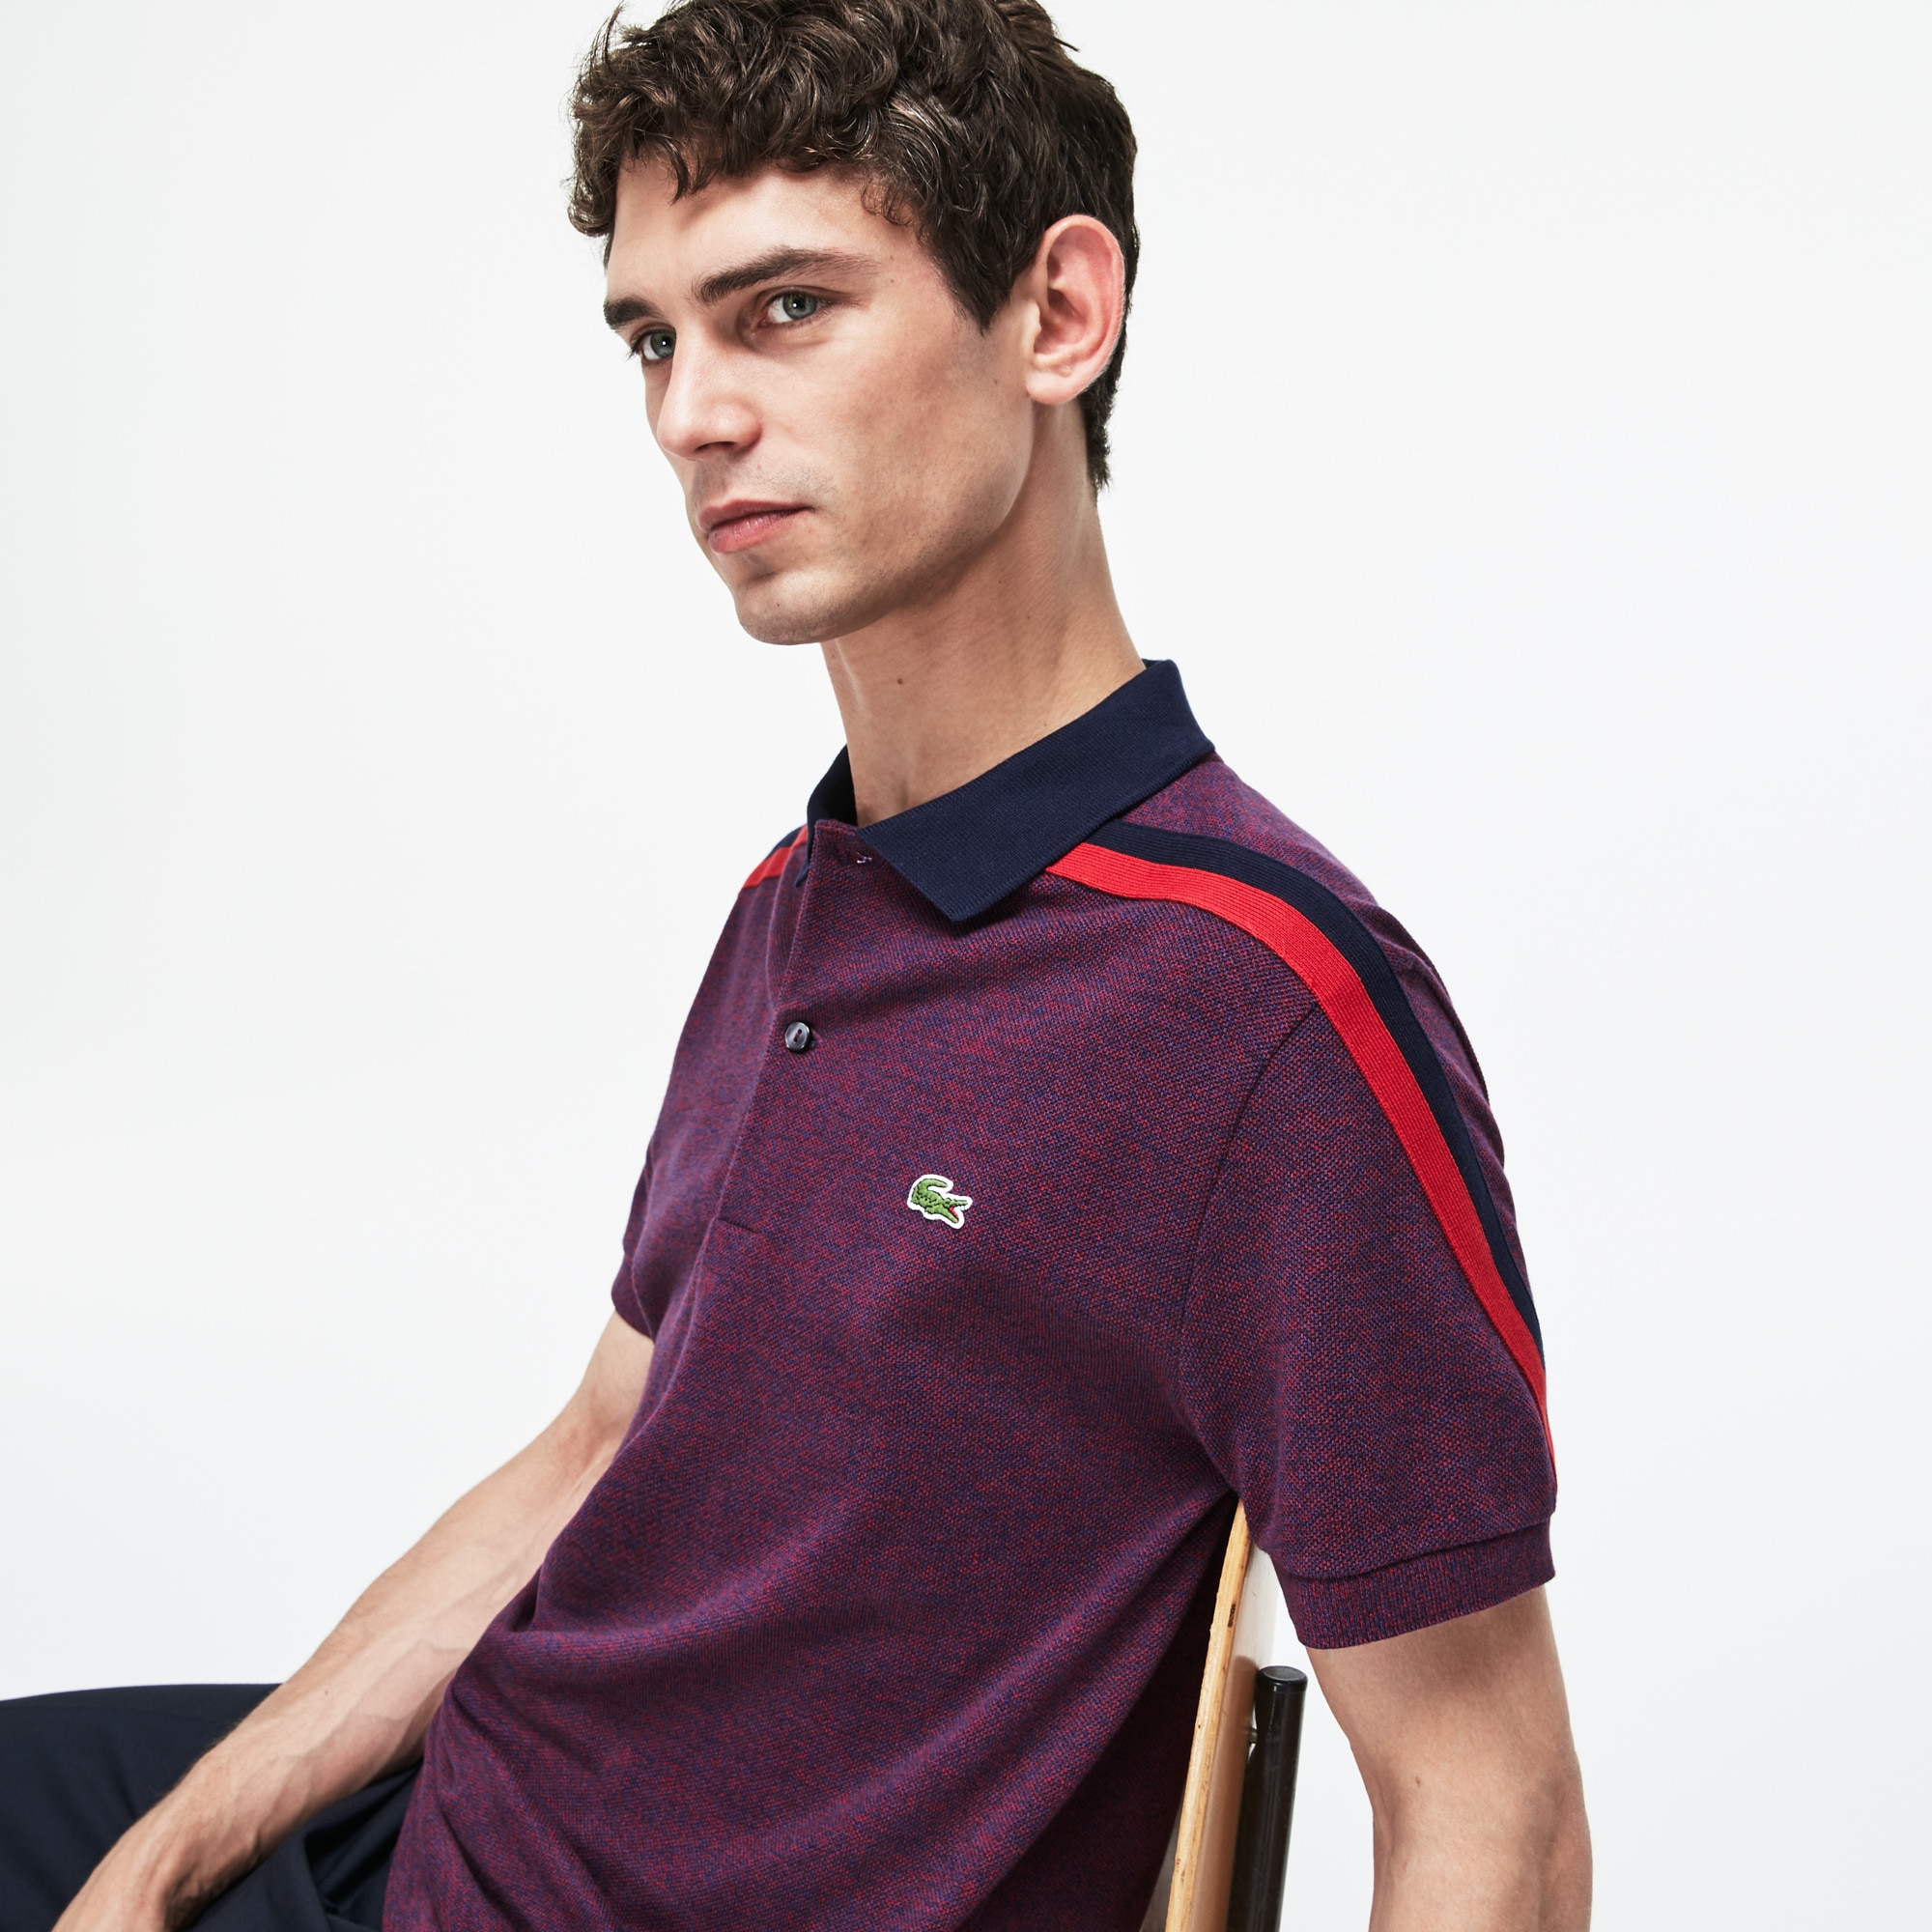 Lacoste - Polo De Hombre Lacoste Made In France Regular Fit En Piqué De Algodón - 5